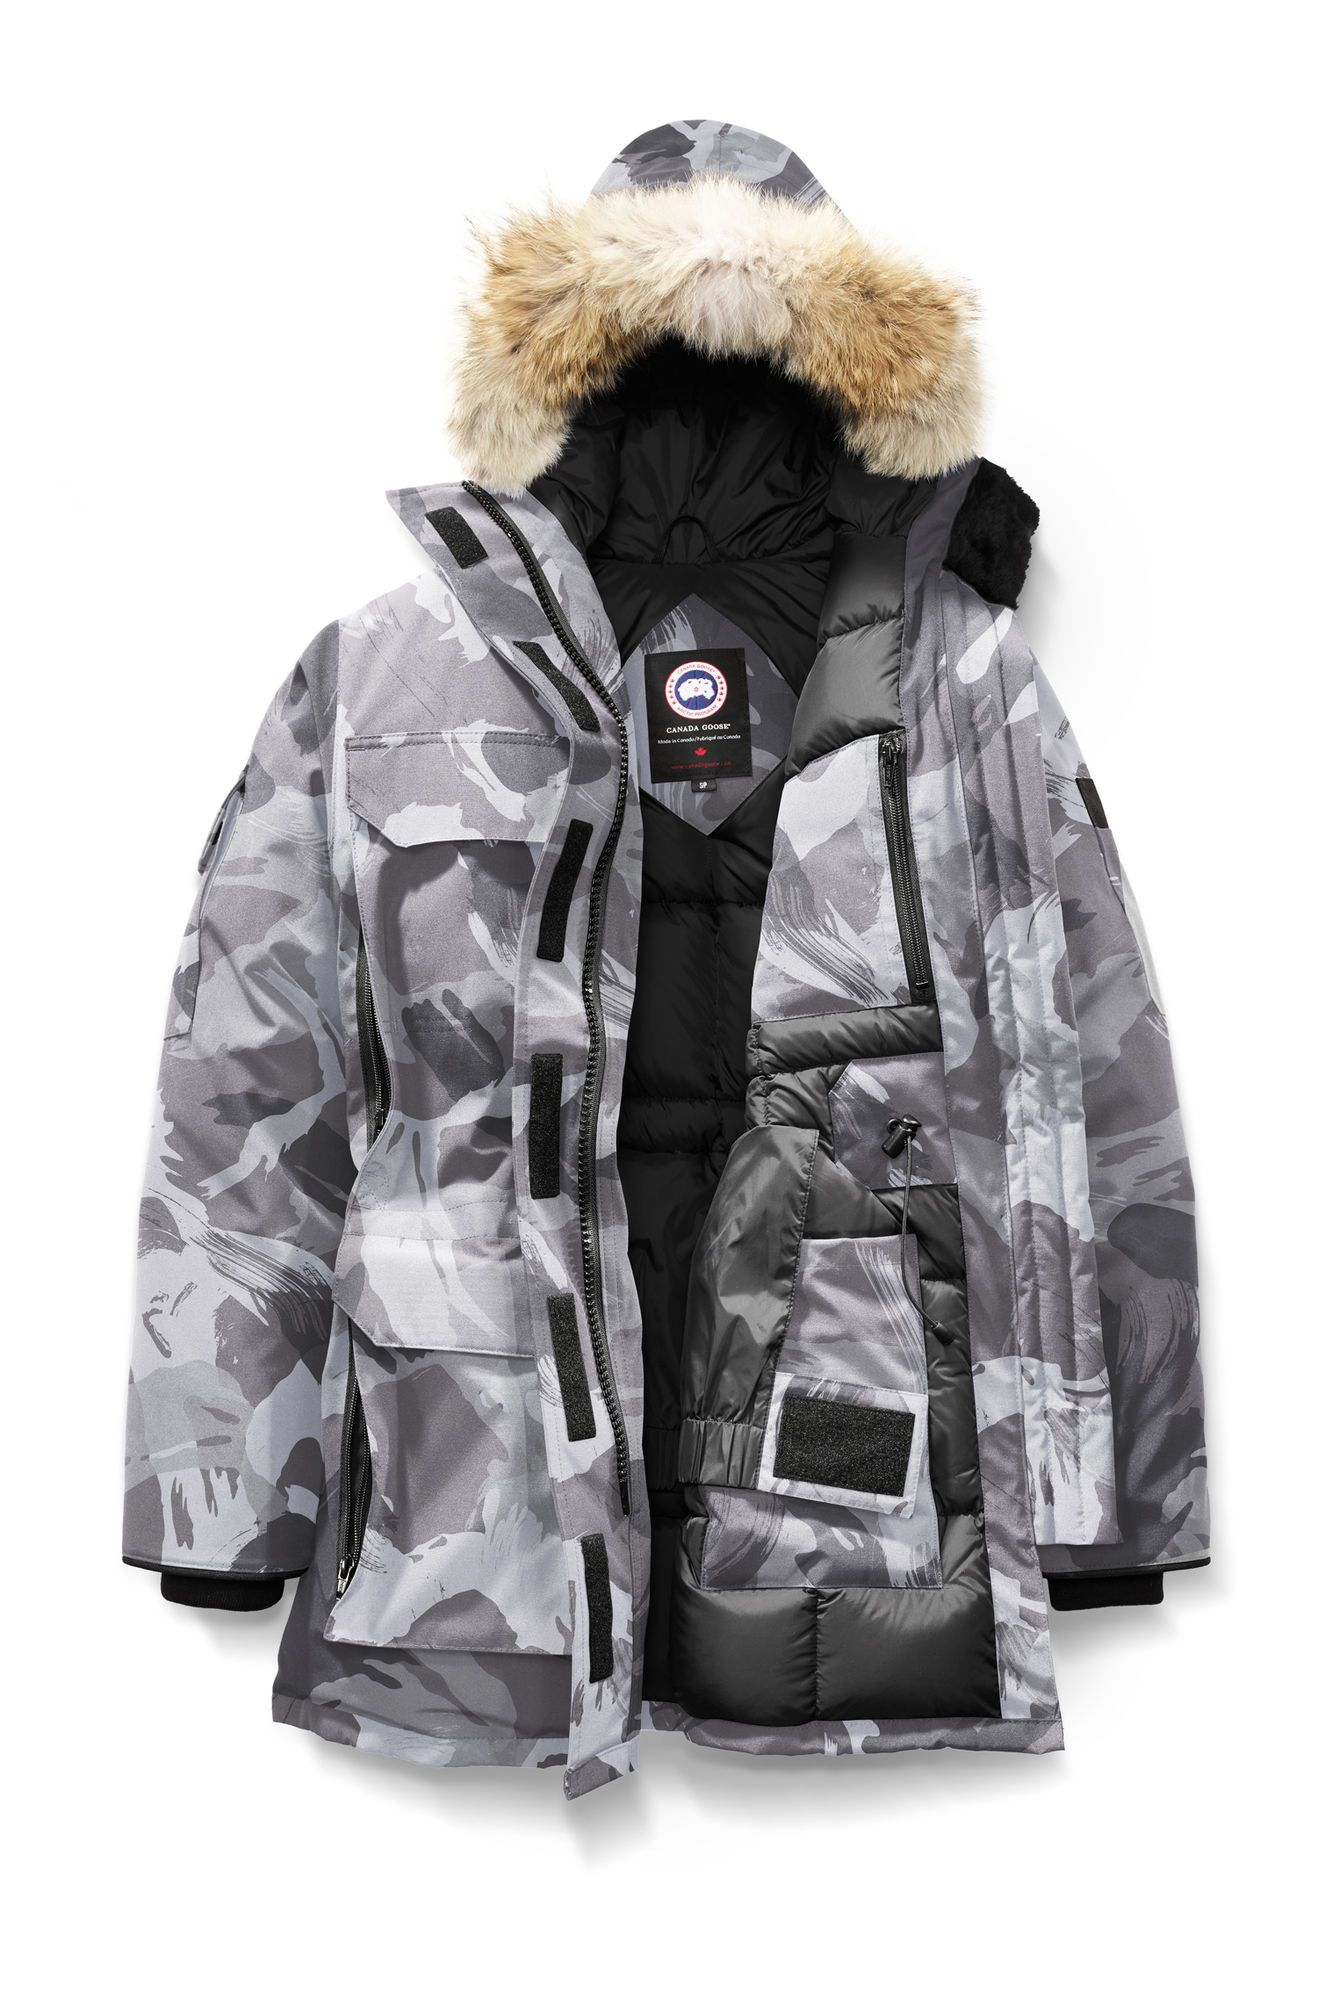 Women's Arctic Program Expedition Parka | Canada Goose (Grey Brush Camo)